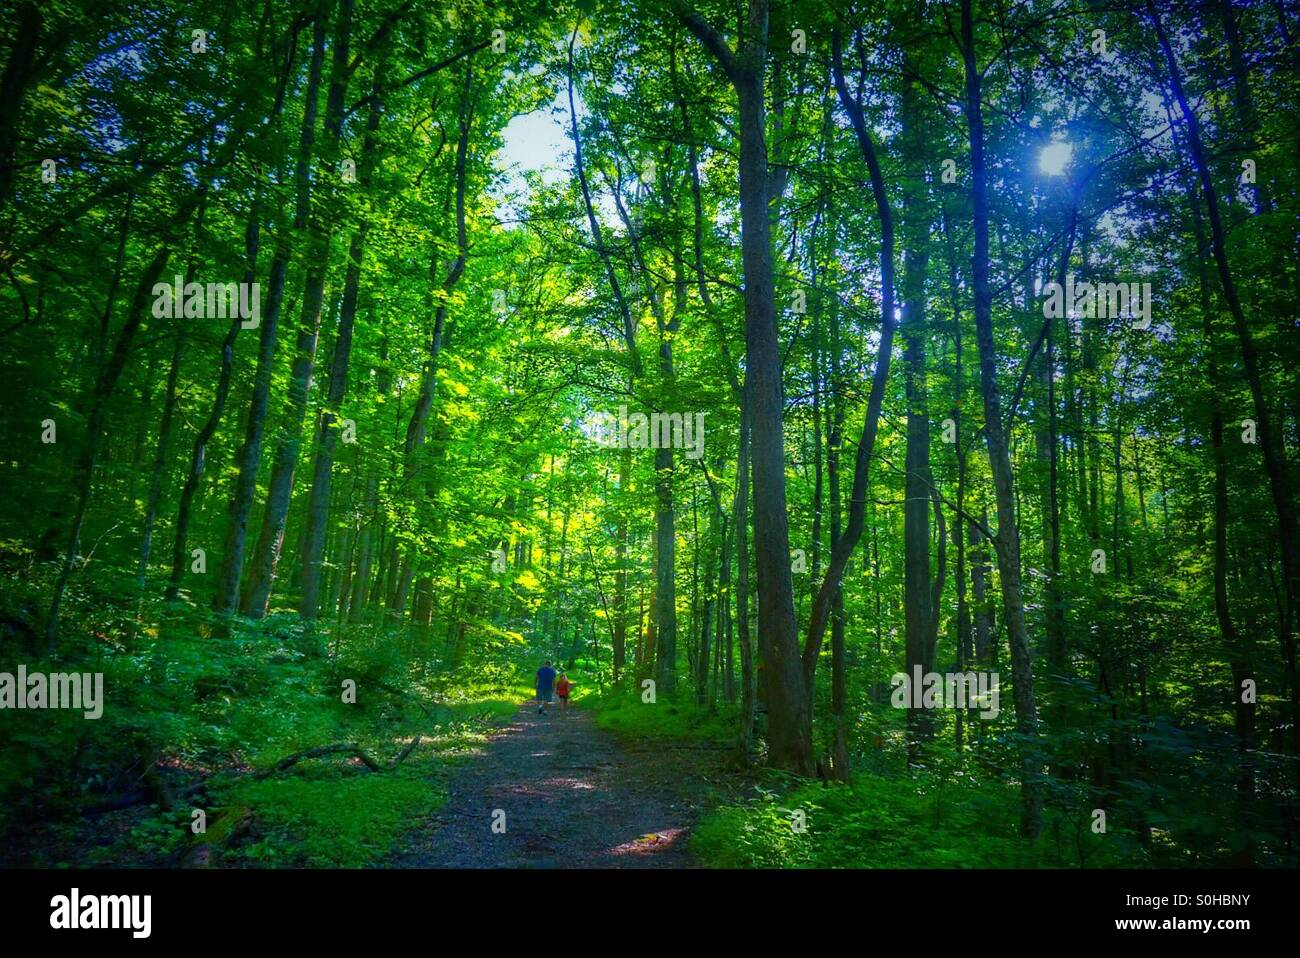 Waking in the woods - Stock Image